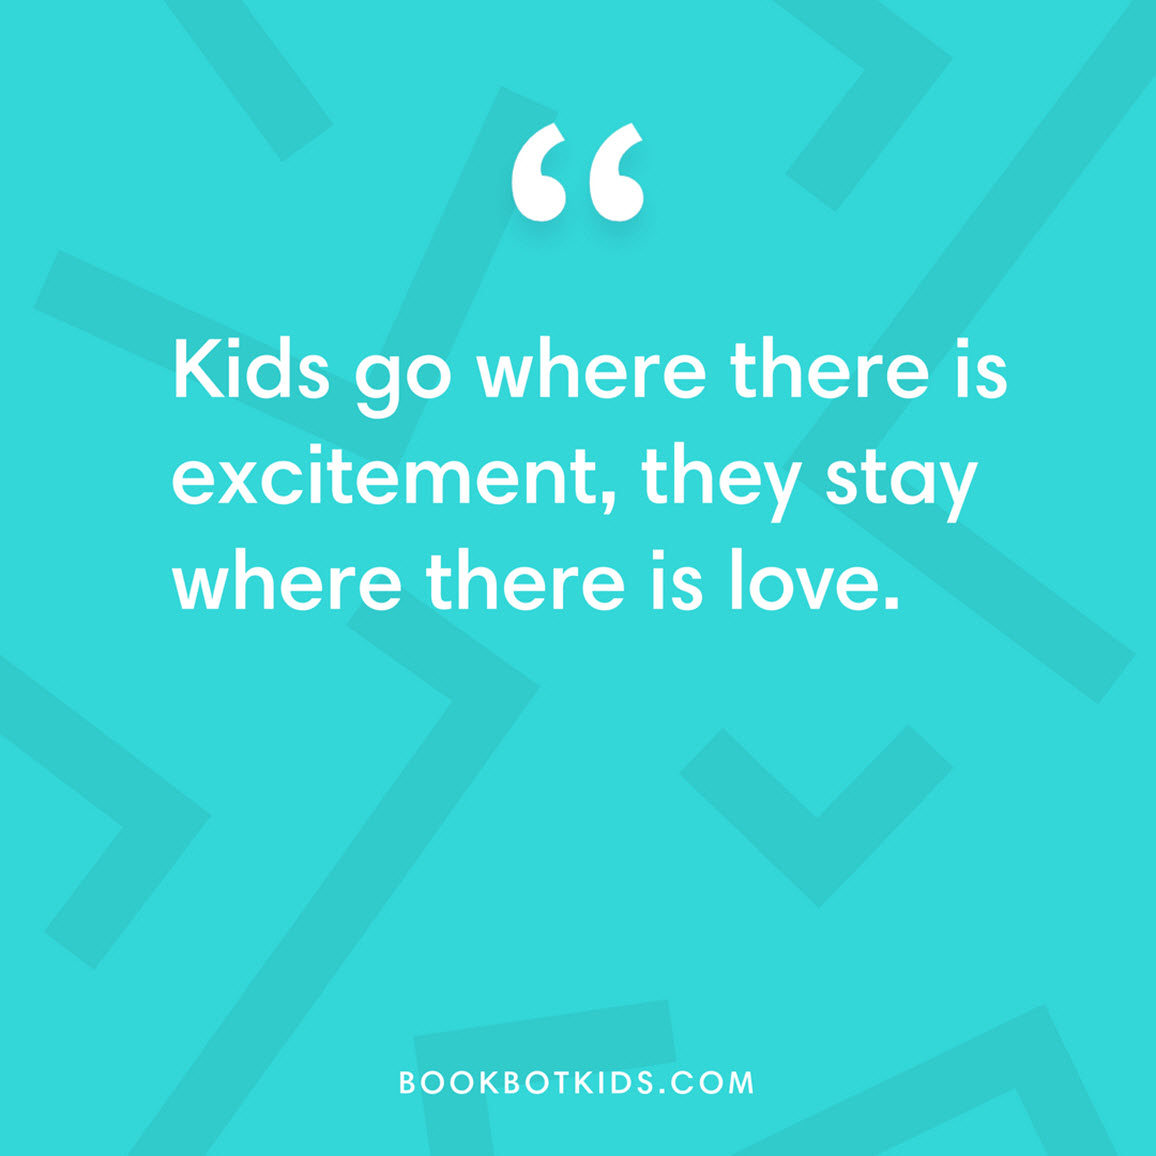 Kids go where there is excitement, they stay where there is love.